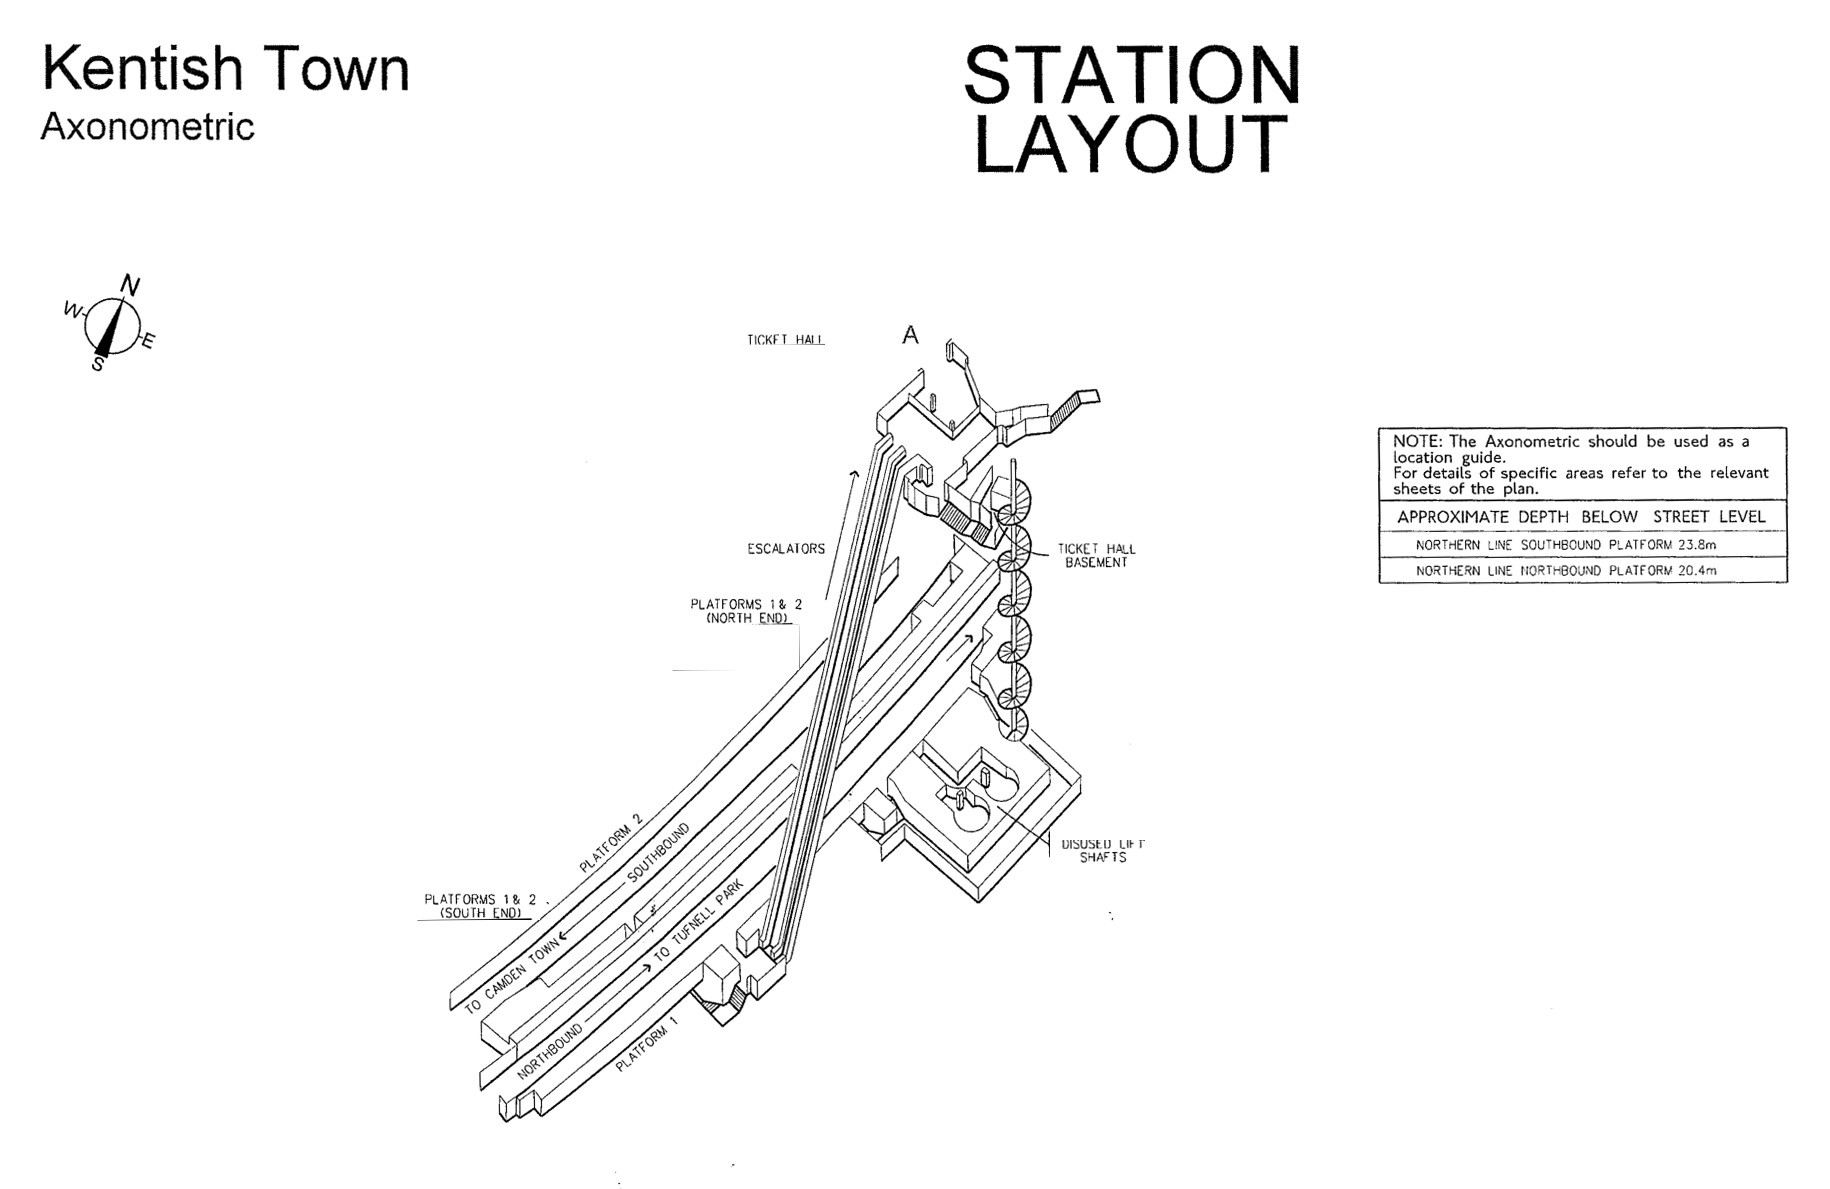 diagramme-3d-station-metro-londres-kentish-town-07